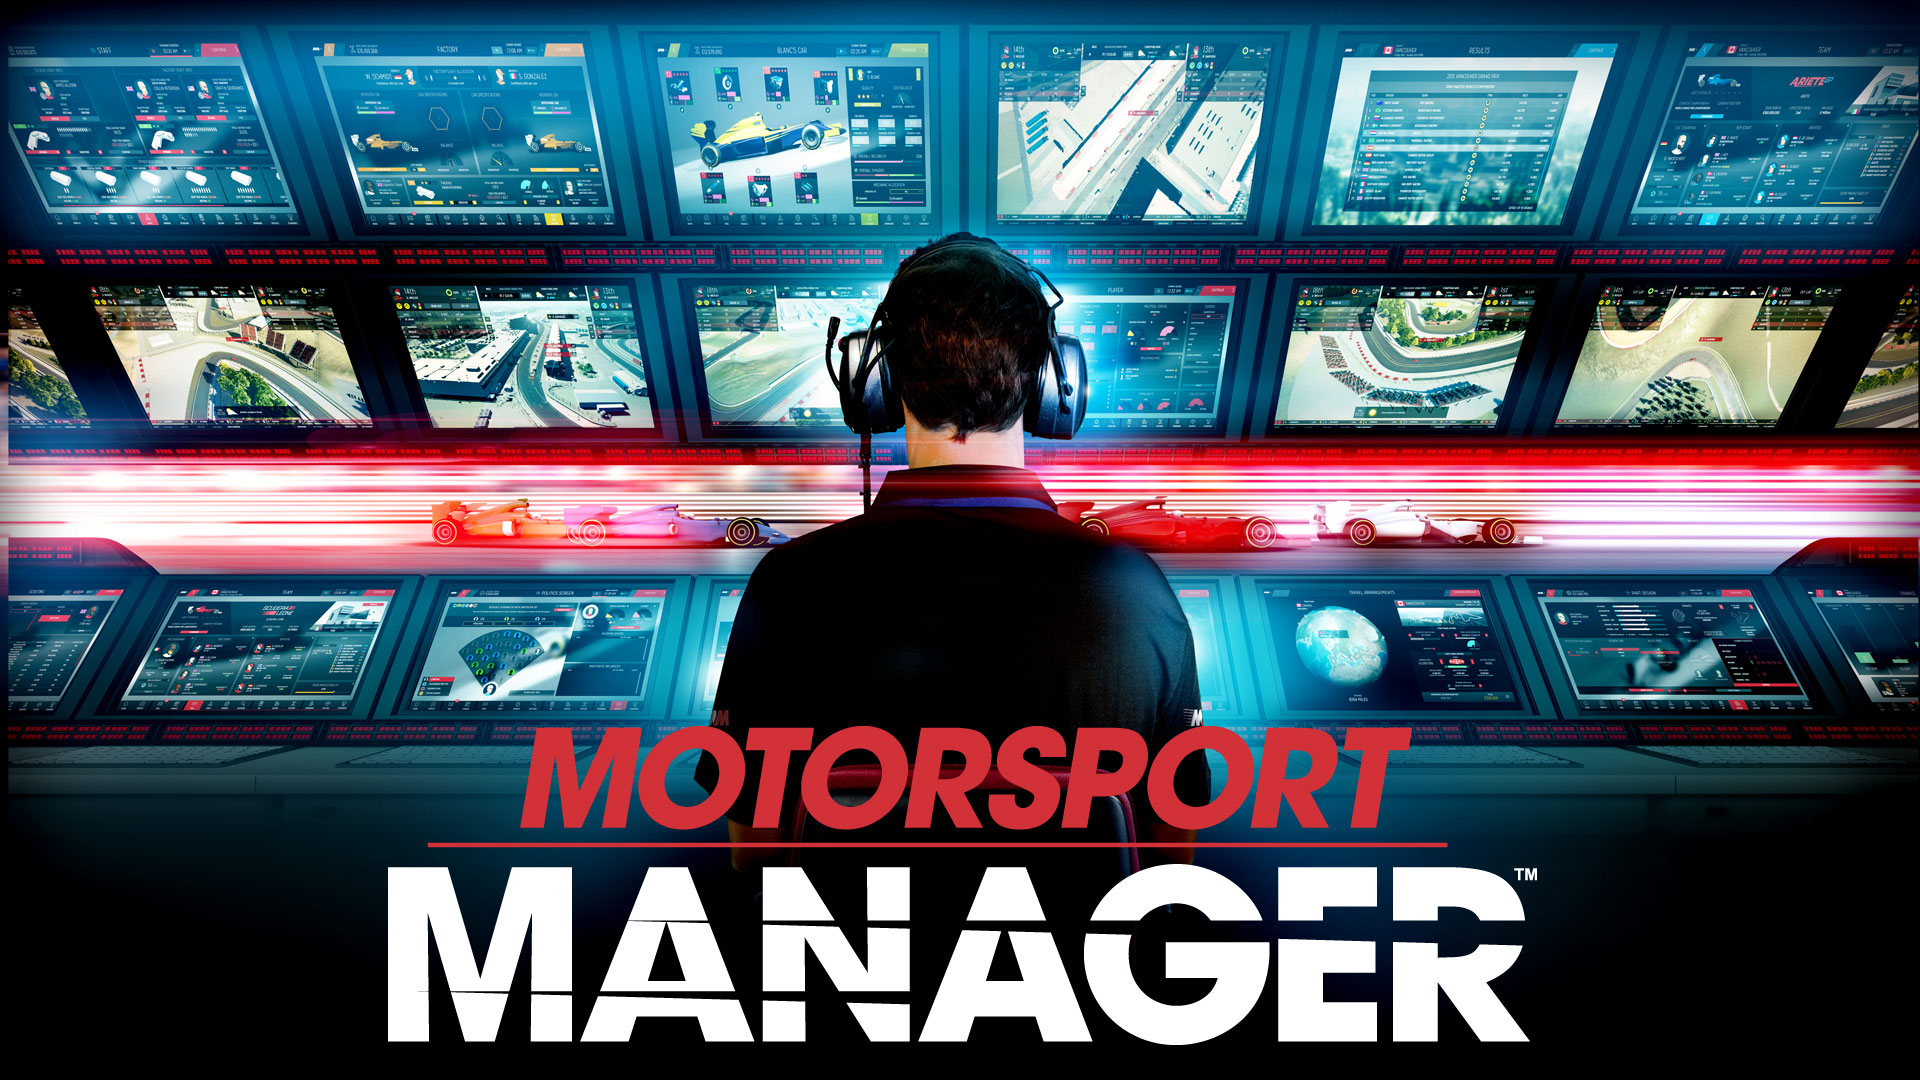 Motorsport Manager: The F1 Fanatic review · F1 Fanatic